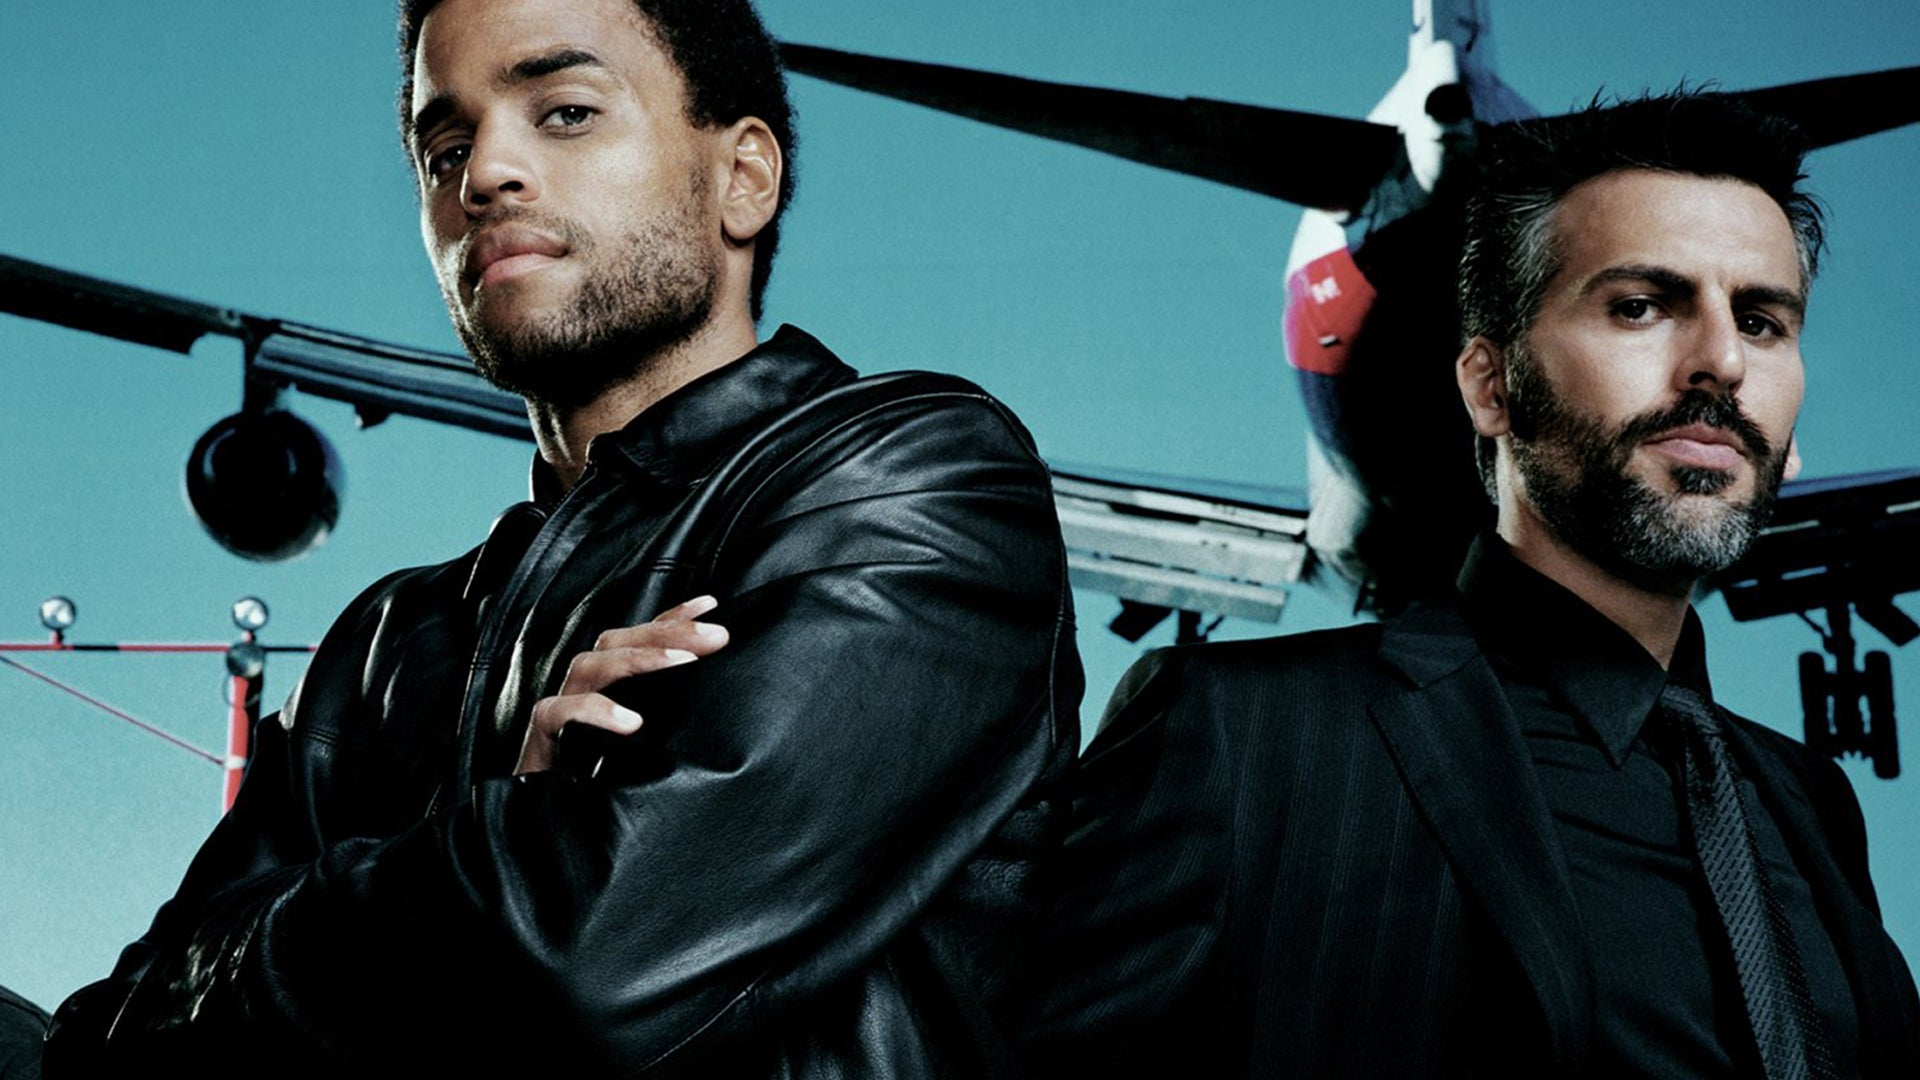 Michael Ealy and Oded Fehr, Sleeper Cell